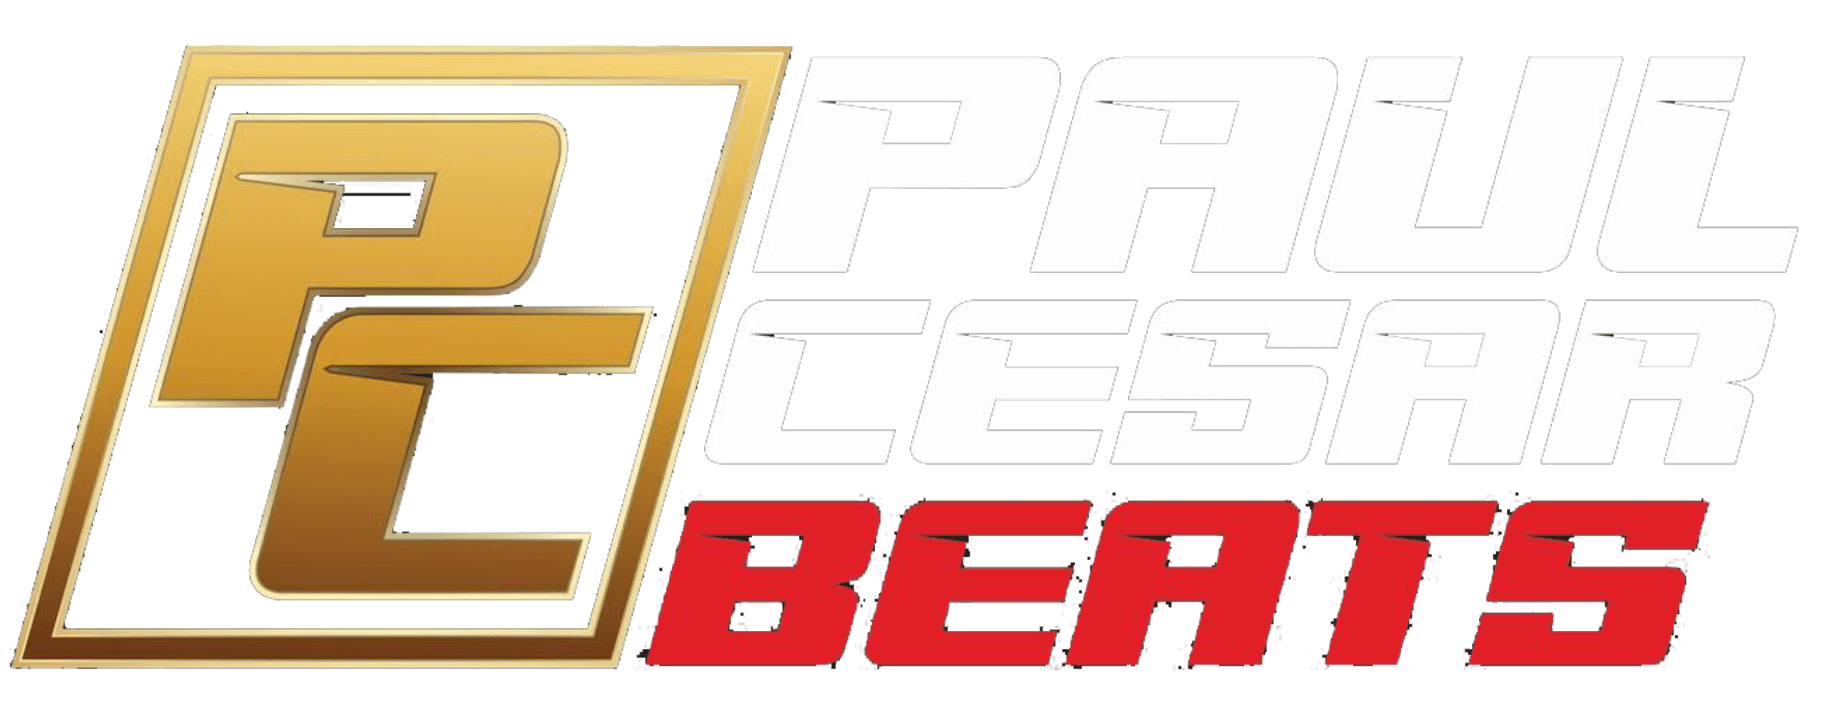 Paul Cesar Beats